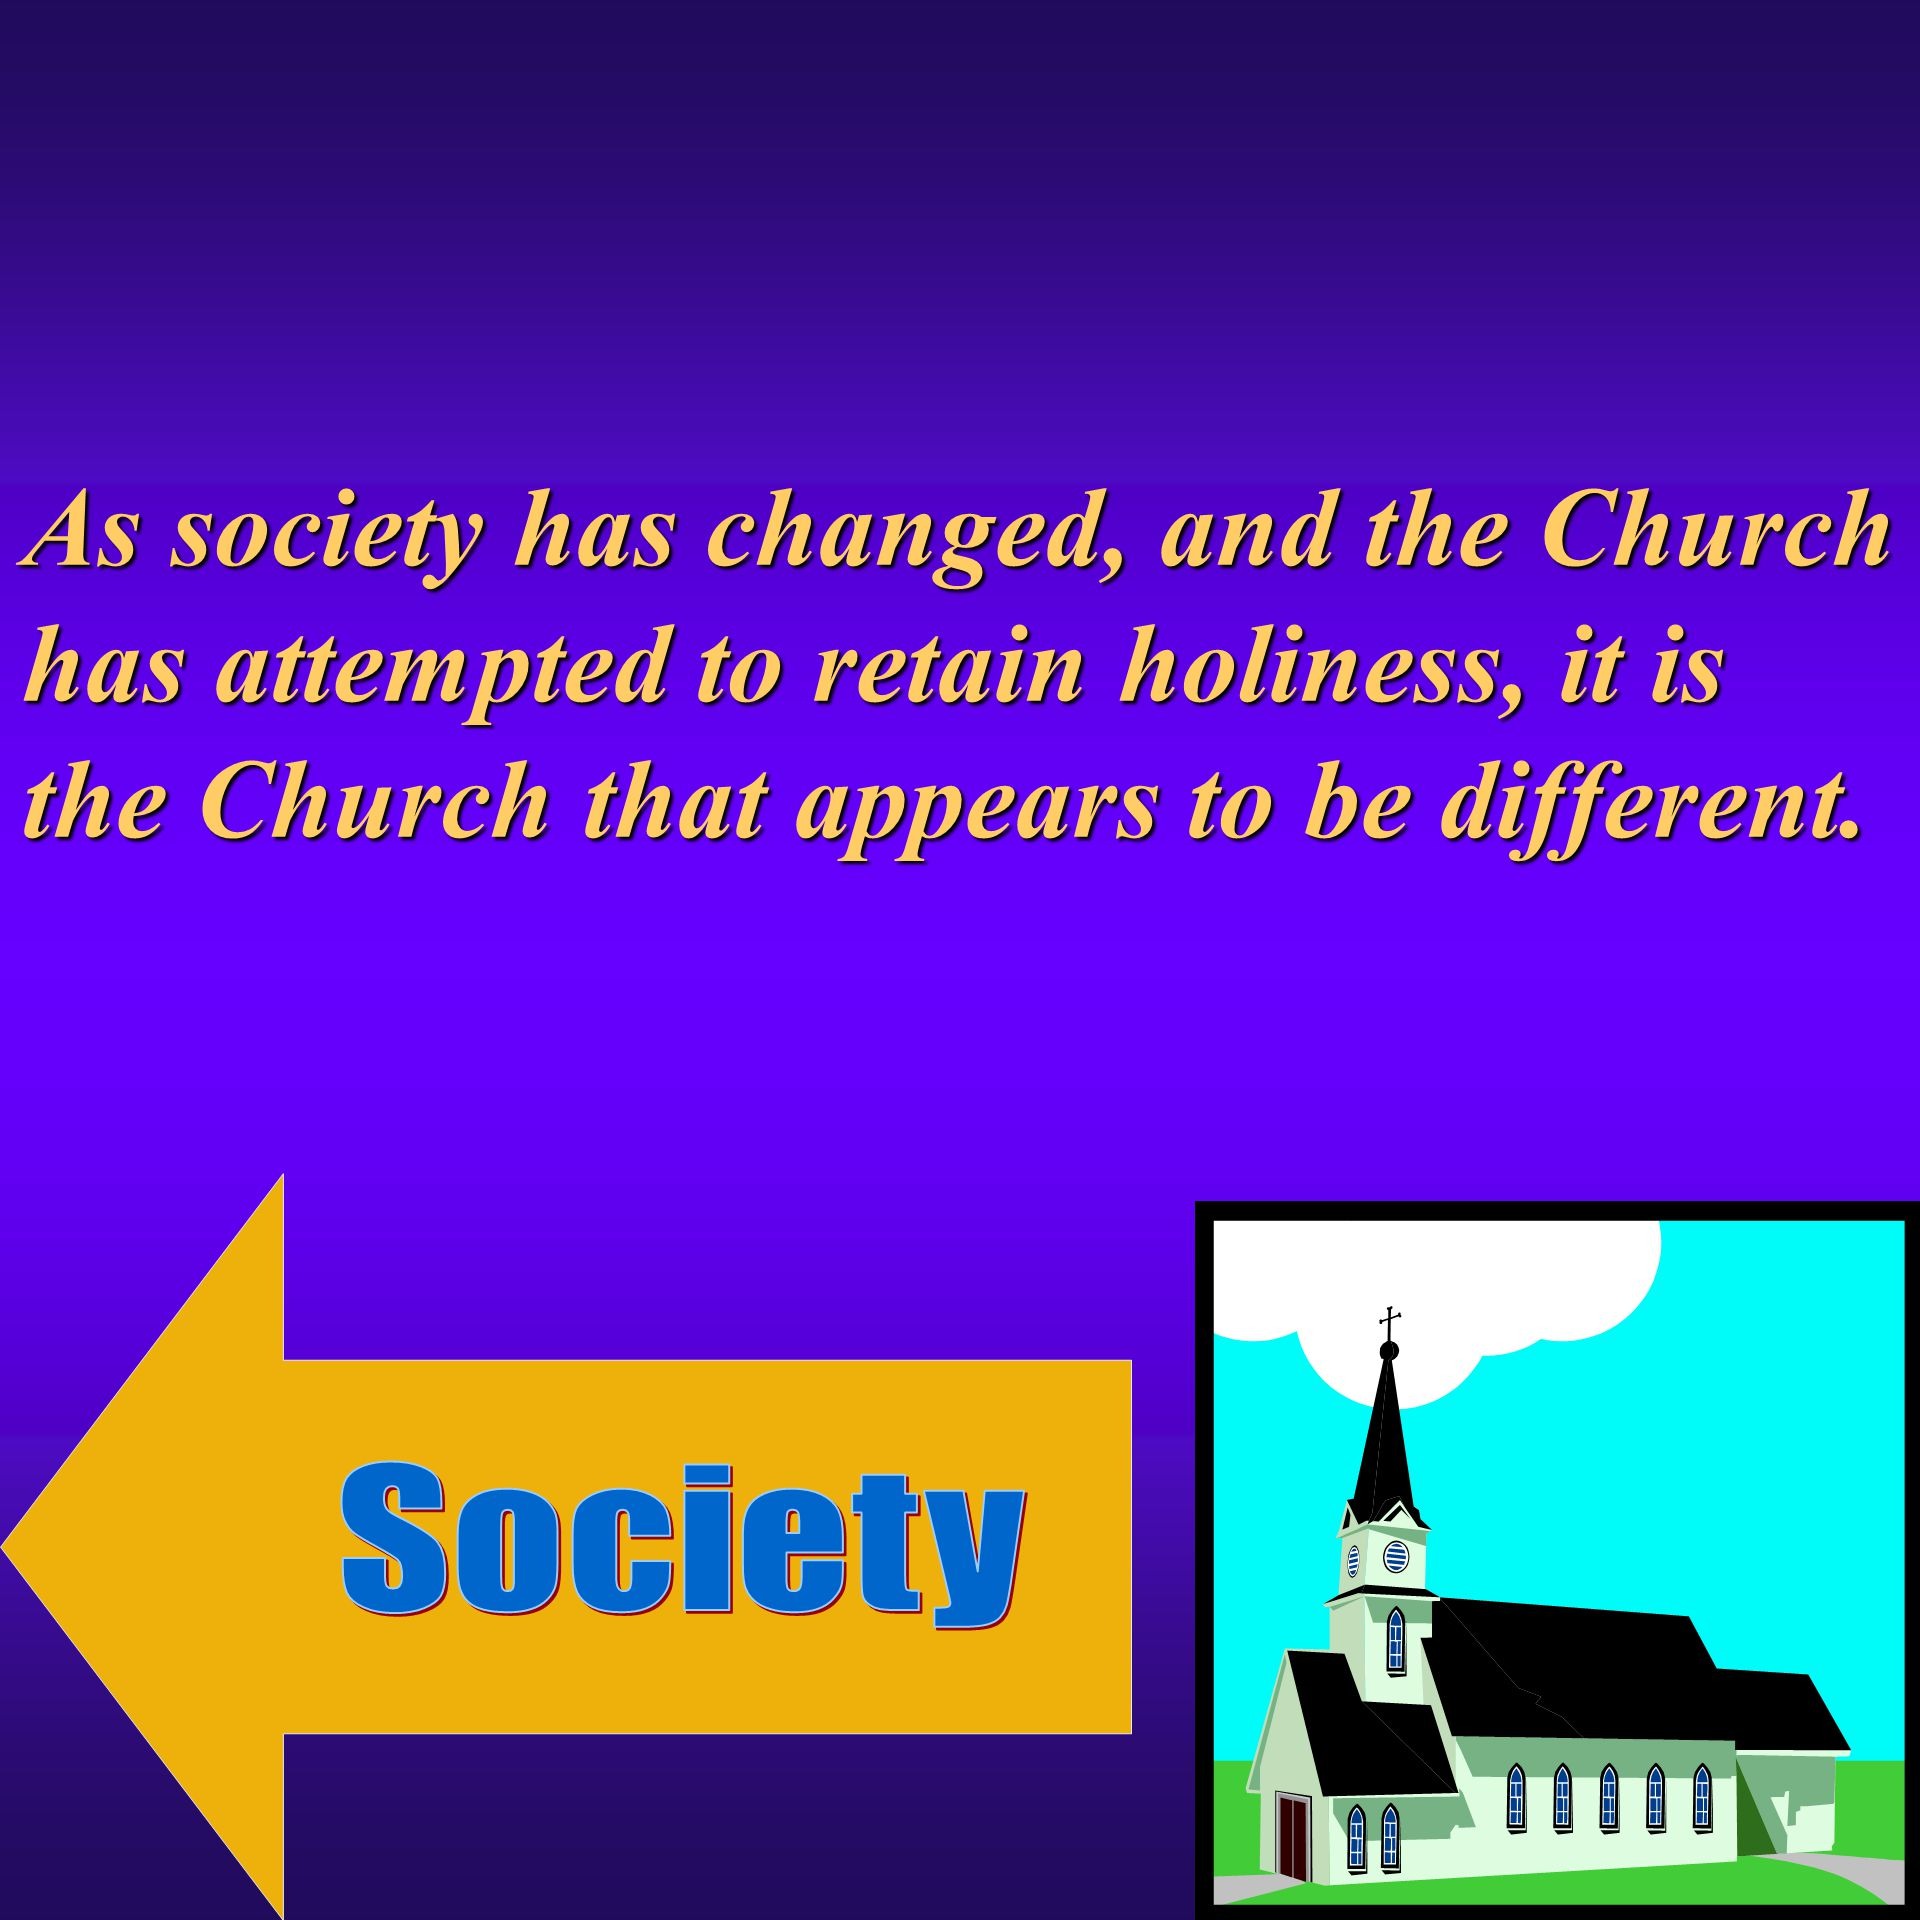 As society has changed, and the Church has attempted to retain holiness, it is the Church that appears to be different.